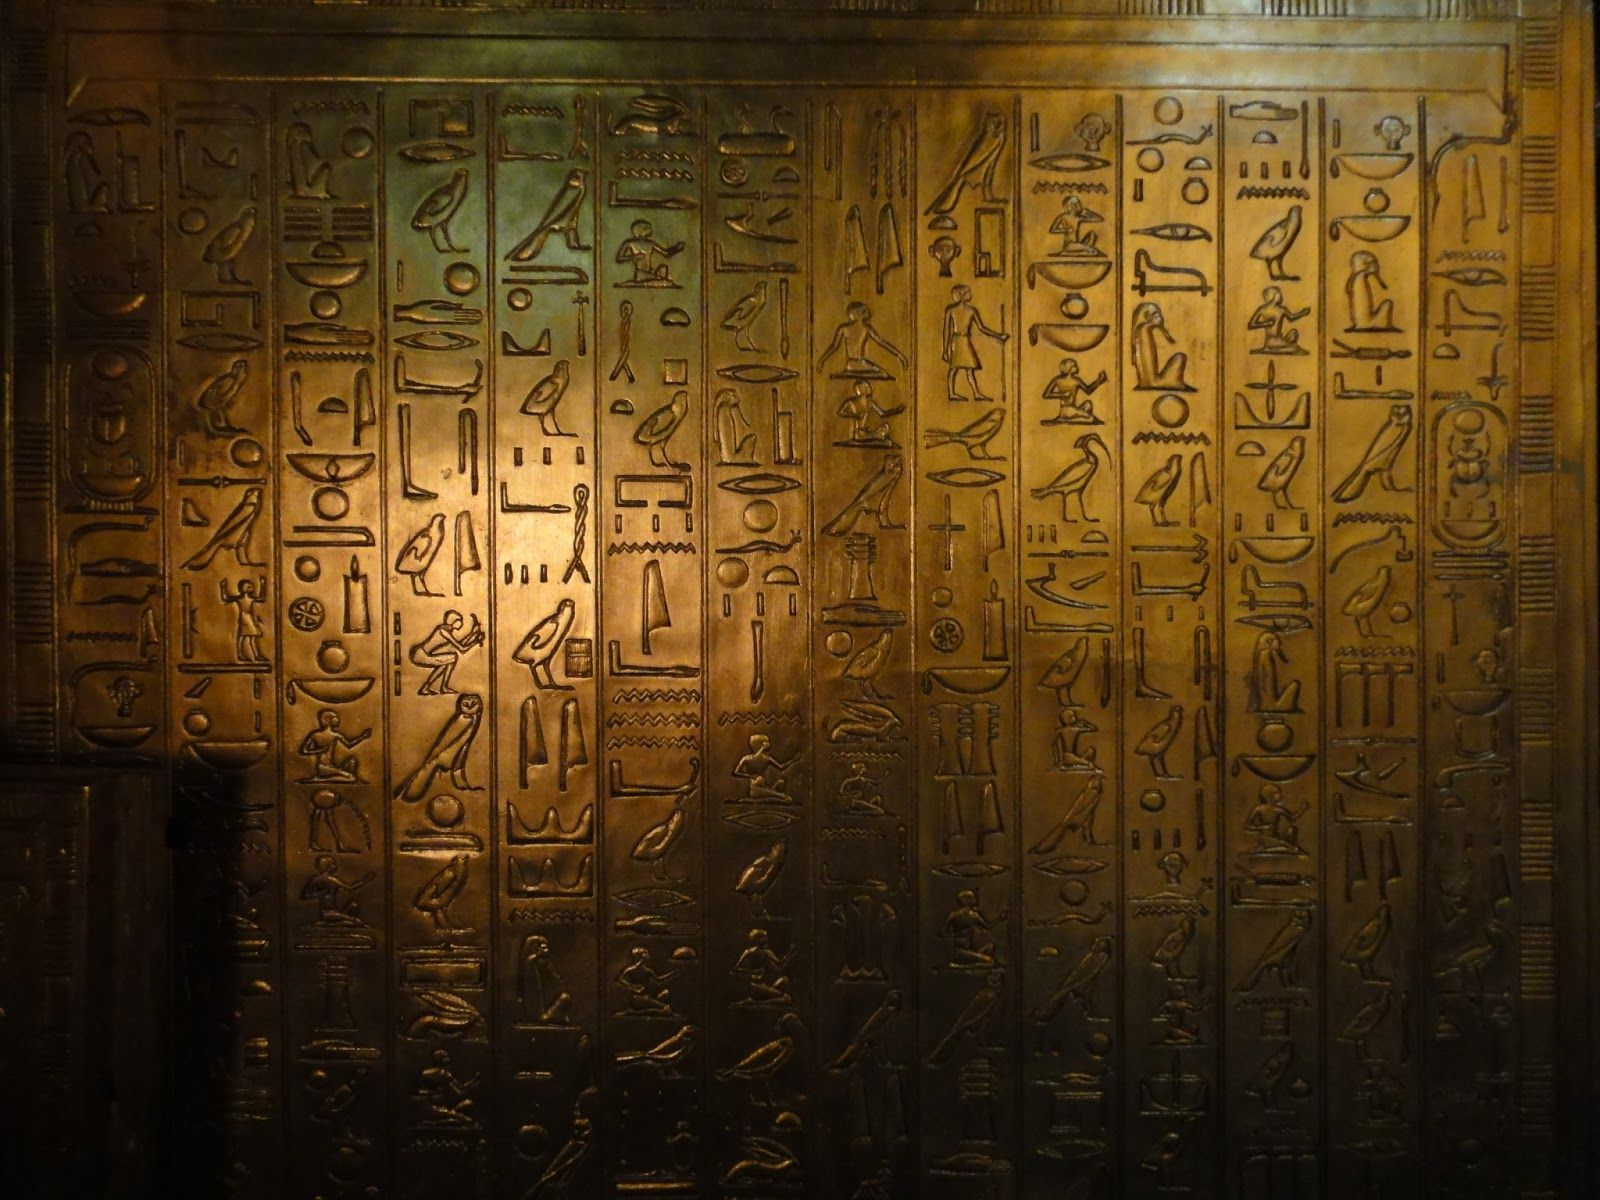 1600x1200 HD Egyptian Hieroglyphics Backgrounds. - Media file | PixelsTalk.Net